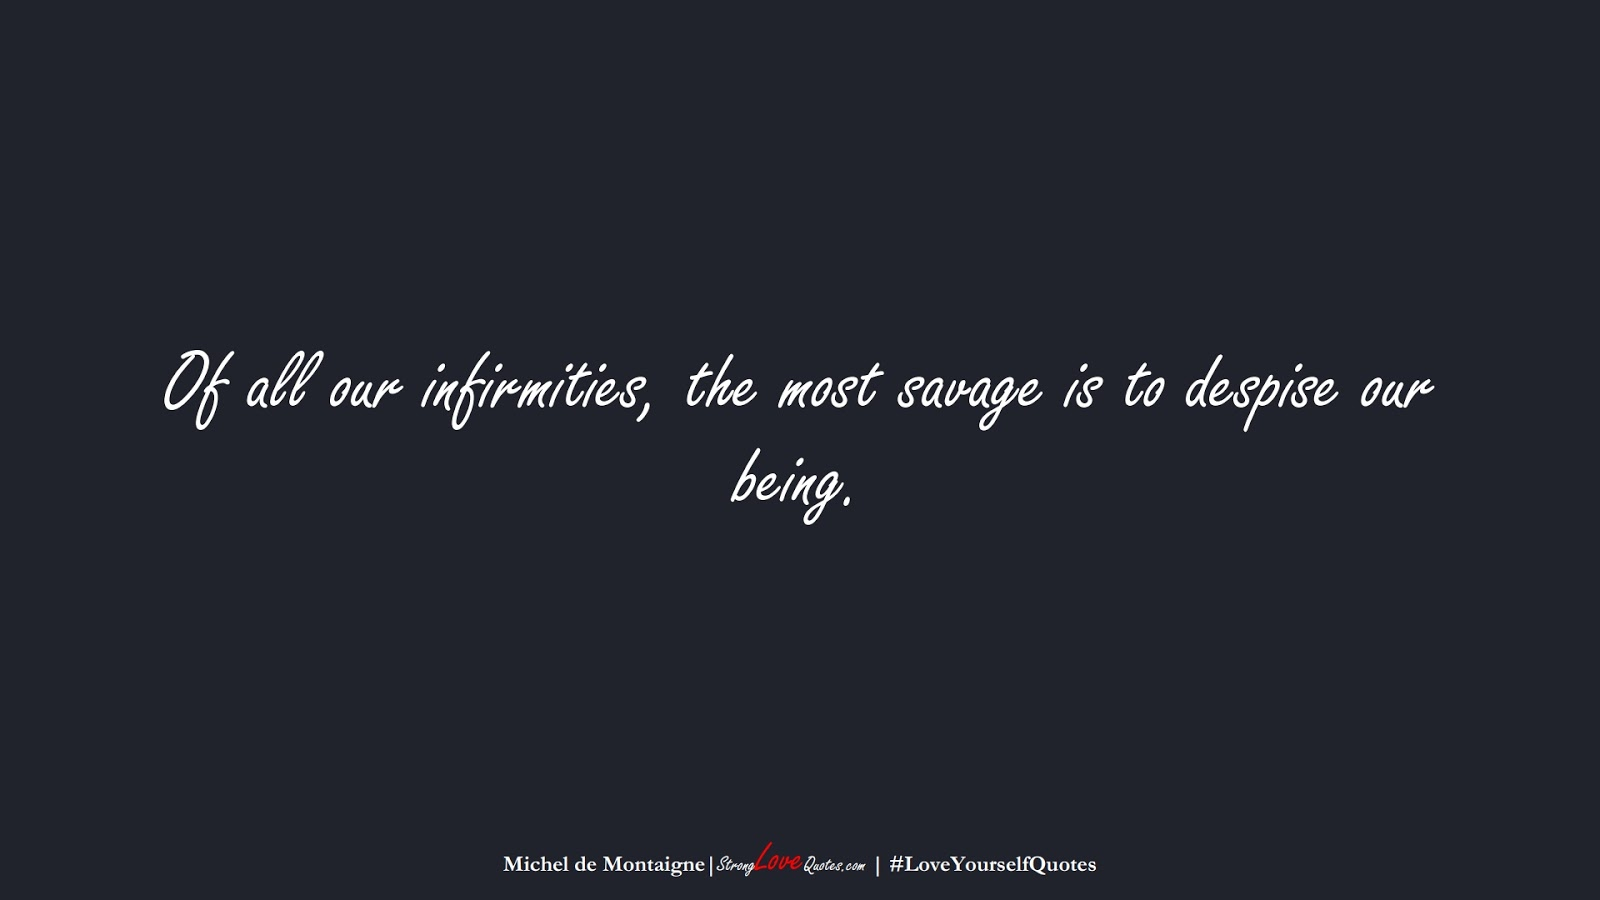 Of all our infirmities, the most savage is to despise our being. (Michel de Montaigne);  #LoveYourselfQuotes